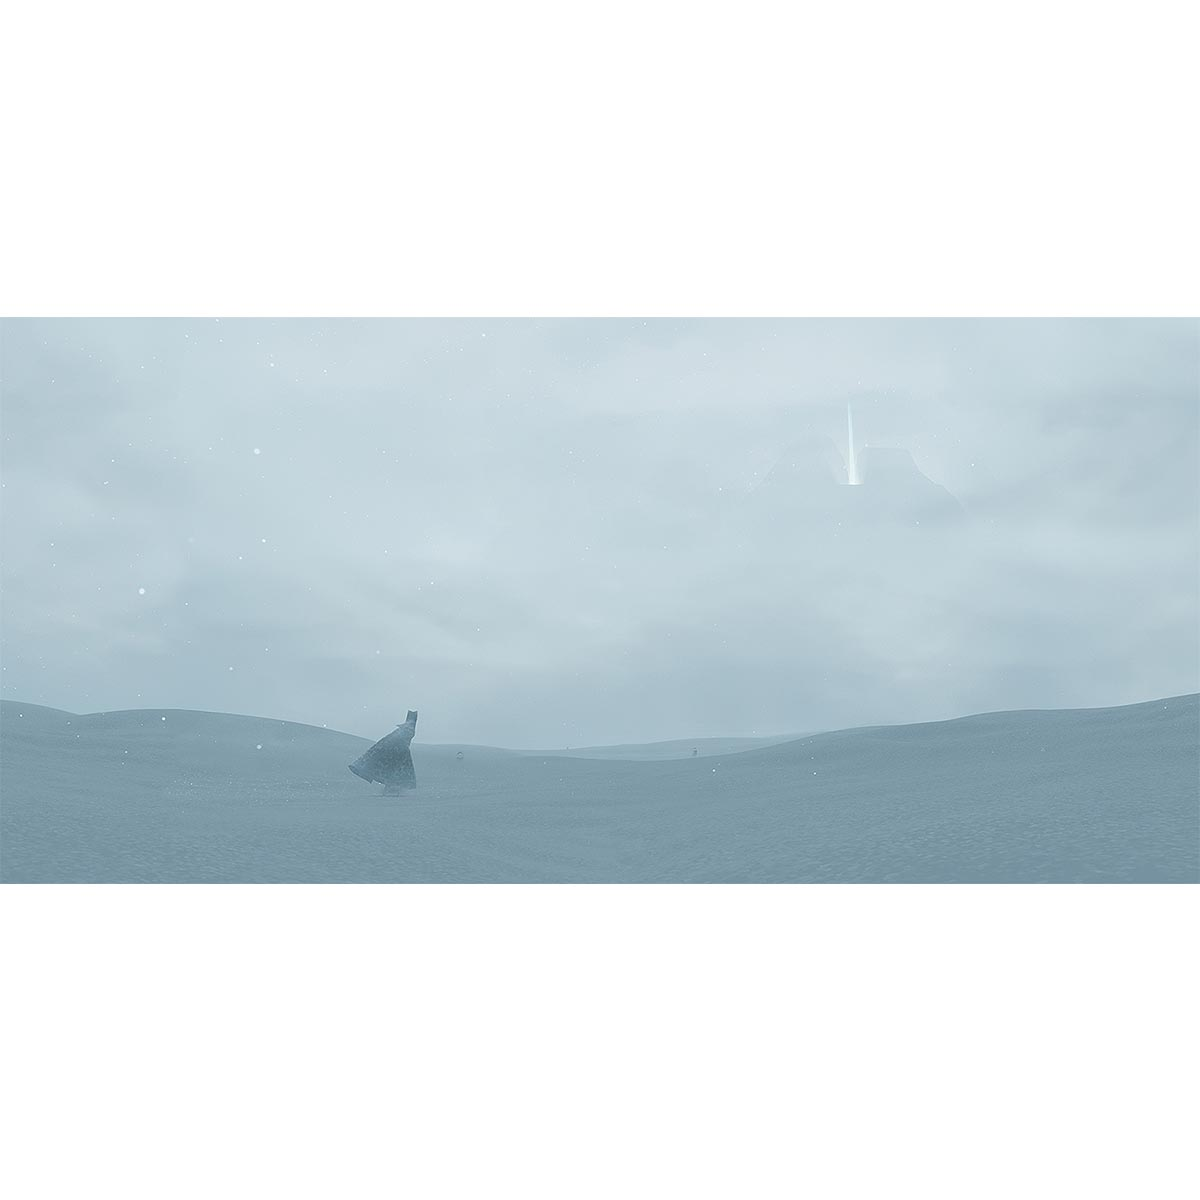 Desperation, Journey, 2012 by Thatgamecompany - limited edition print